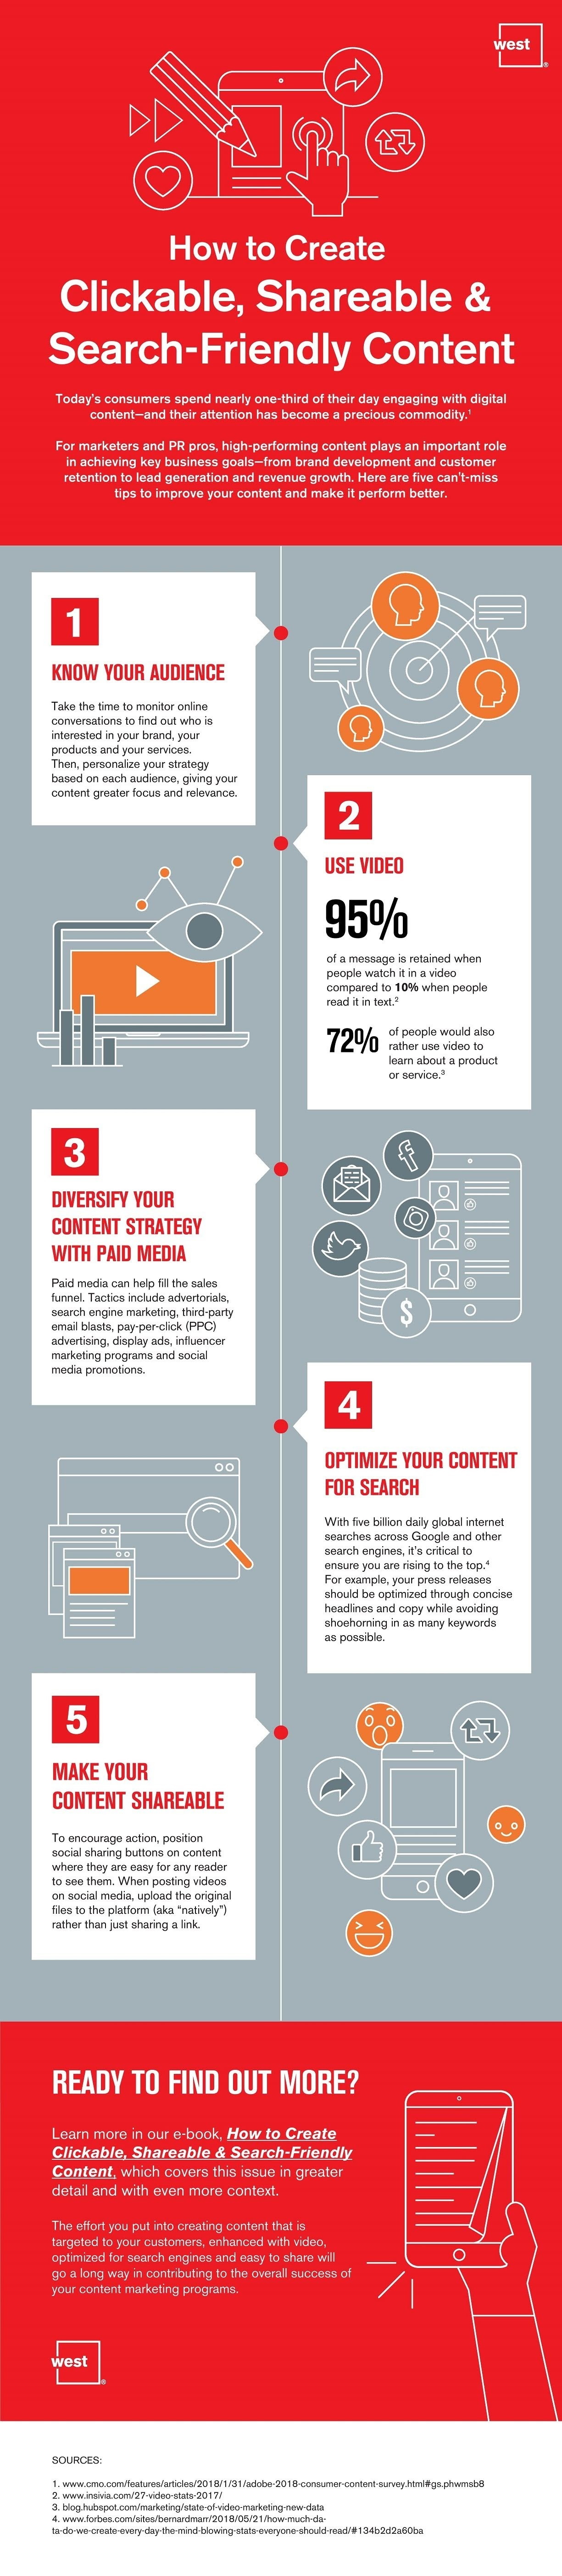 Five Can't-Miss Tips for Better Performing Content #infographic